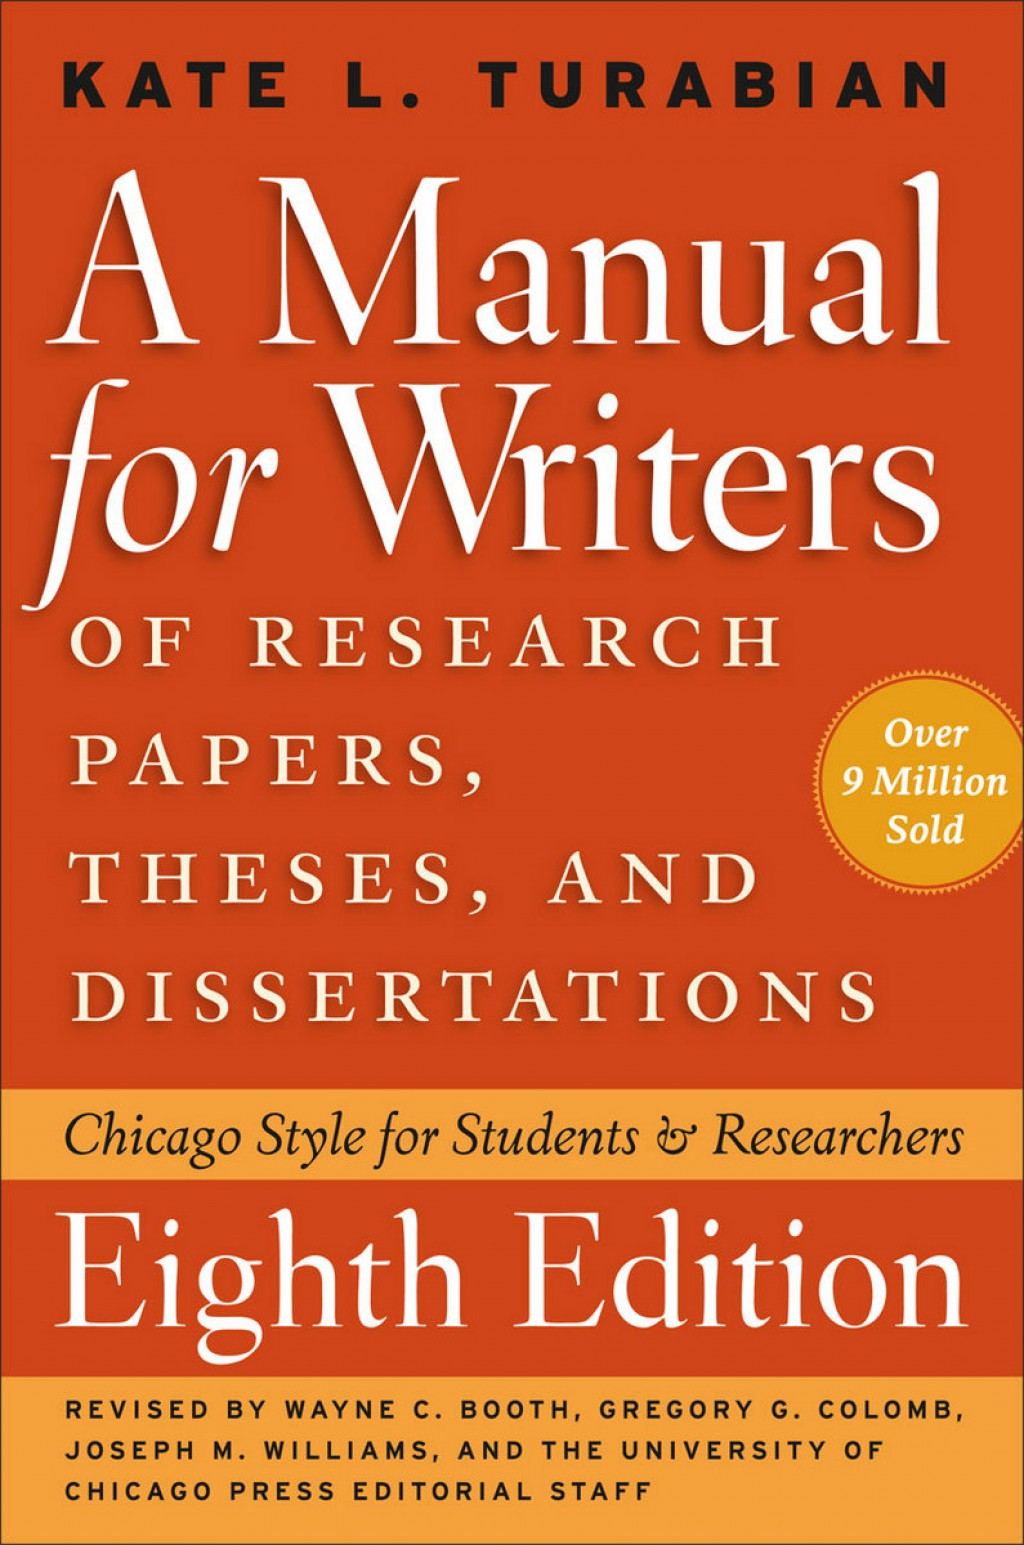 003 Research Paper Frontcover Manual For Writers Of Papers Theses And Dissertations Amazing A Turabian Pdf Large